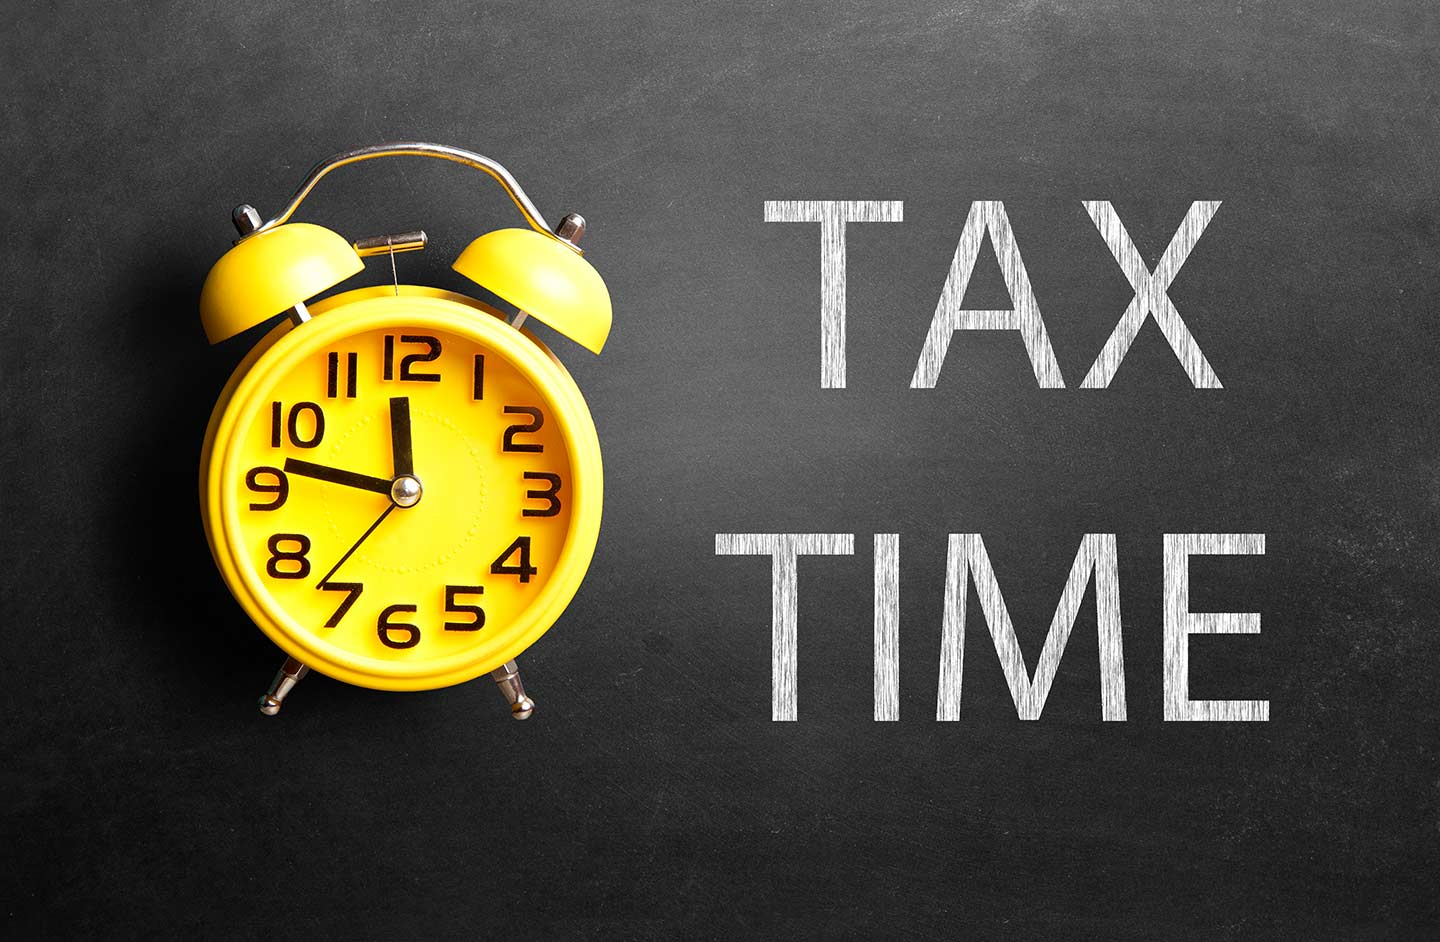 An update on HMRC's Making Tax Digital (MTD)